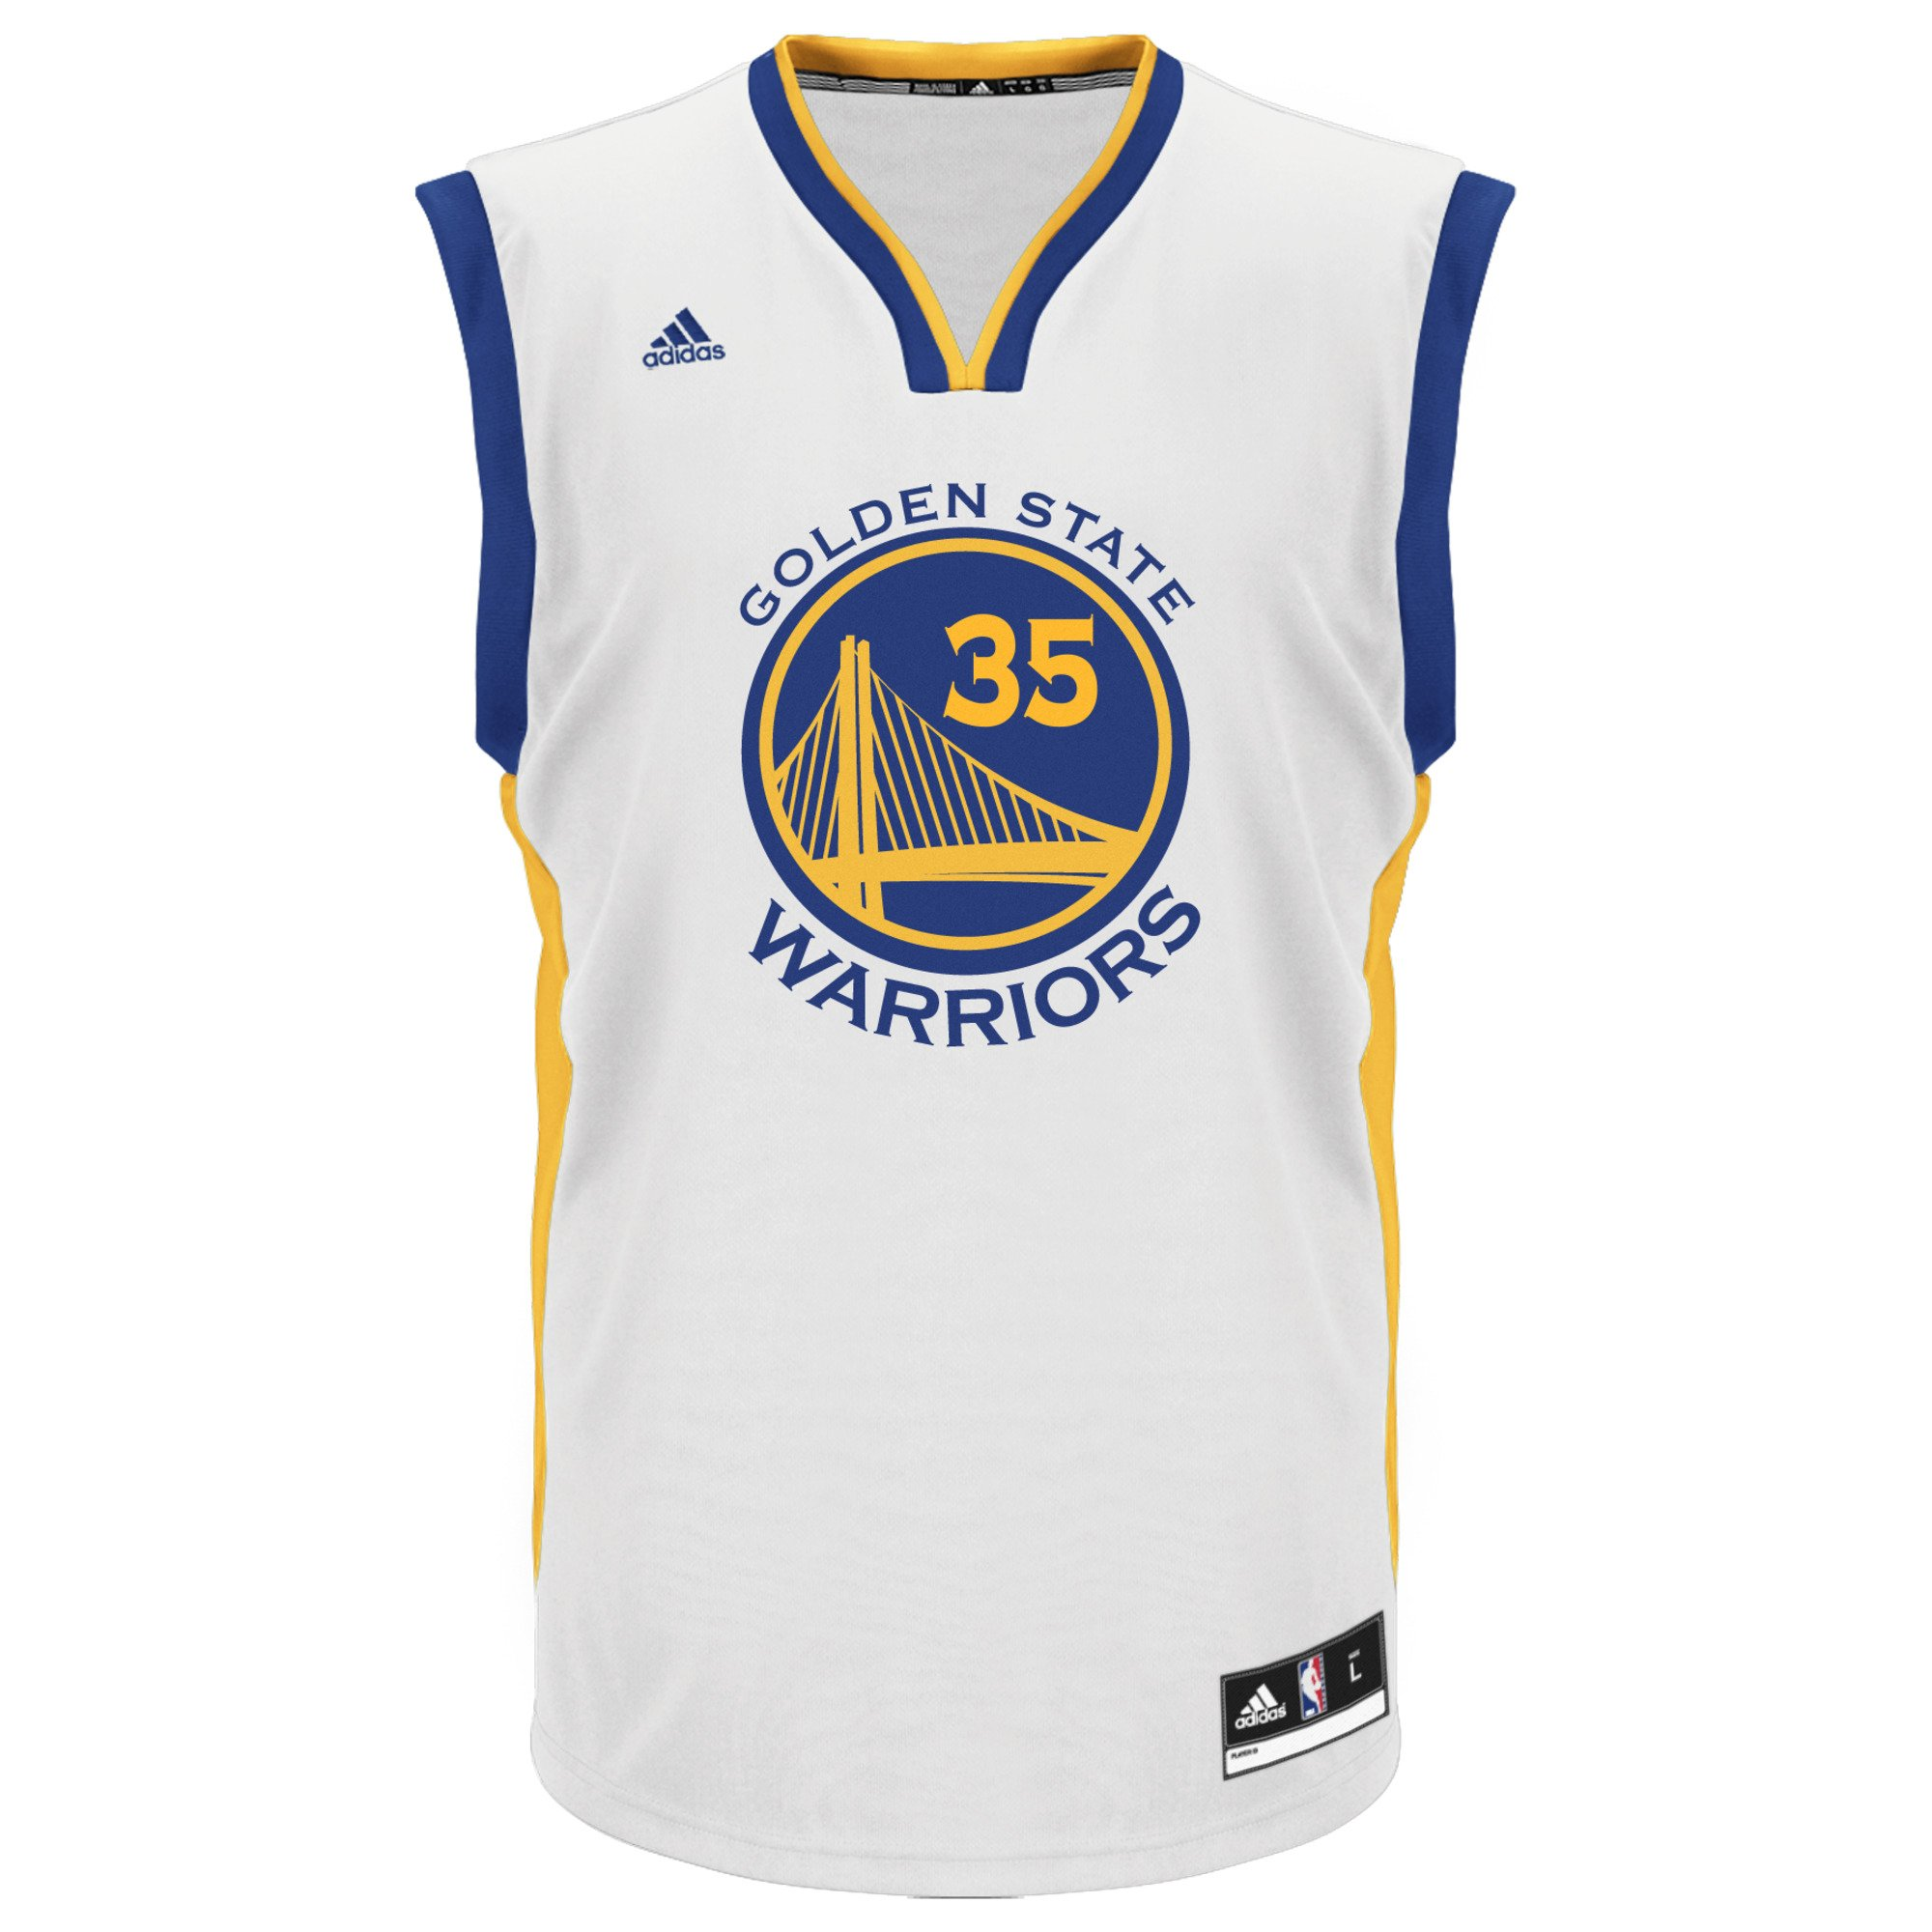 wholesale dealer d8ca6 118fa NBA Men's Golden State Warriors Kevin Durant Replica Player Road Jersey,  Large, White